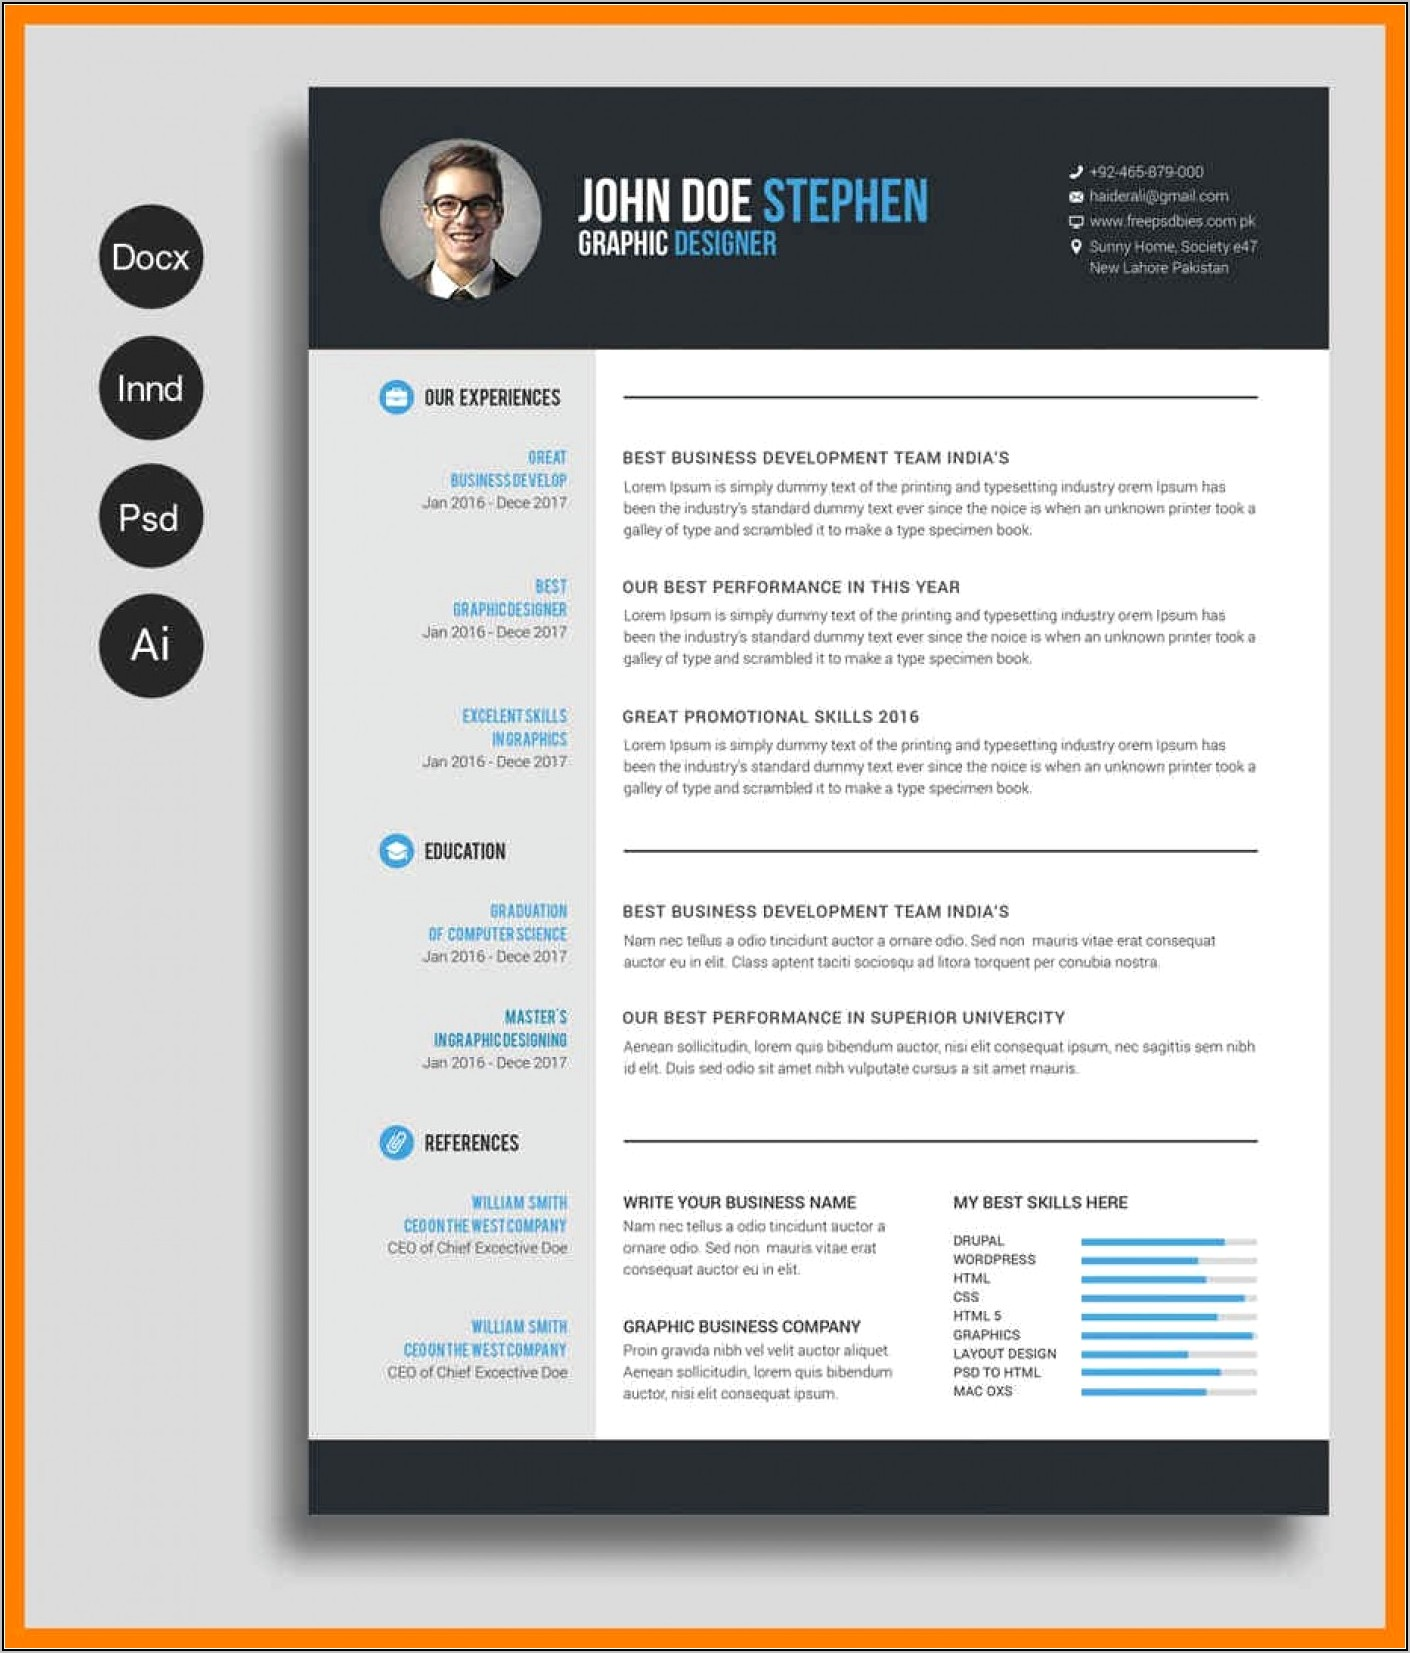 Microsoft Word Templates For Resumes And Letters